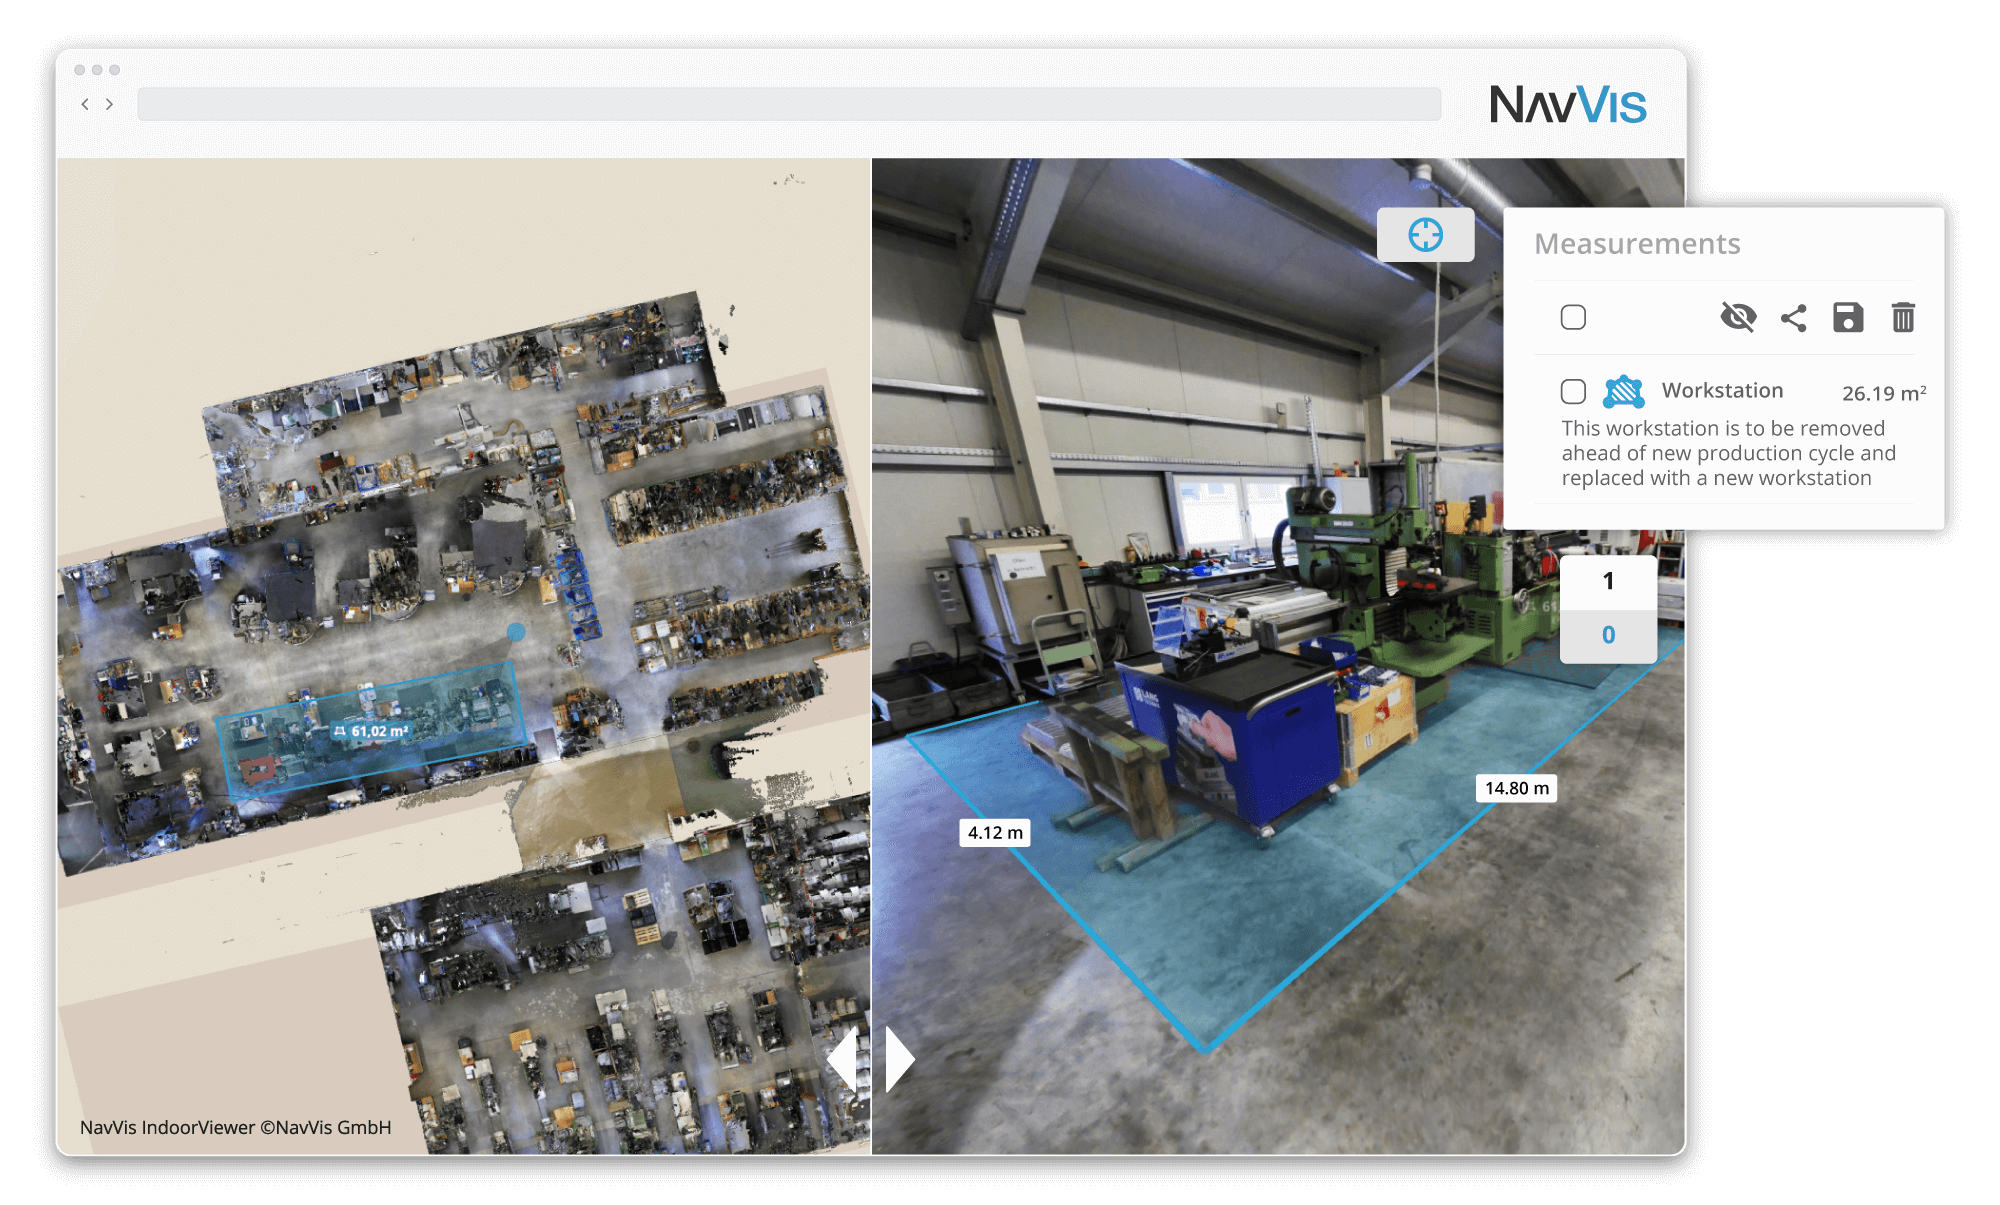 NavVis IndoorViewer 2.7